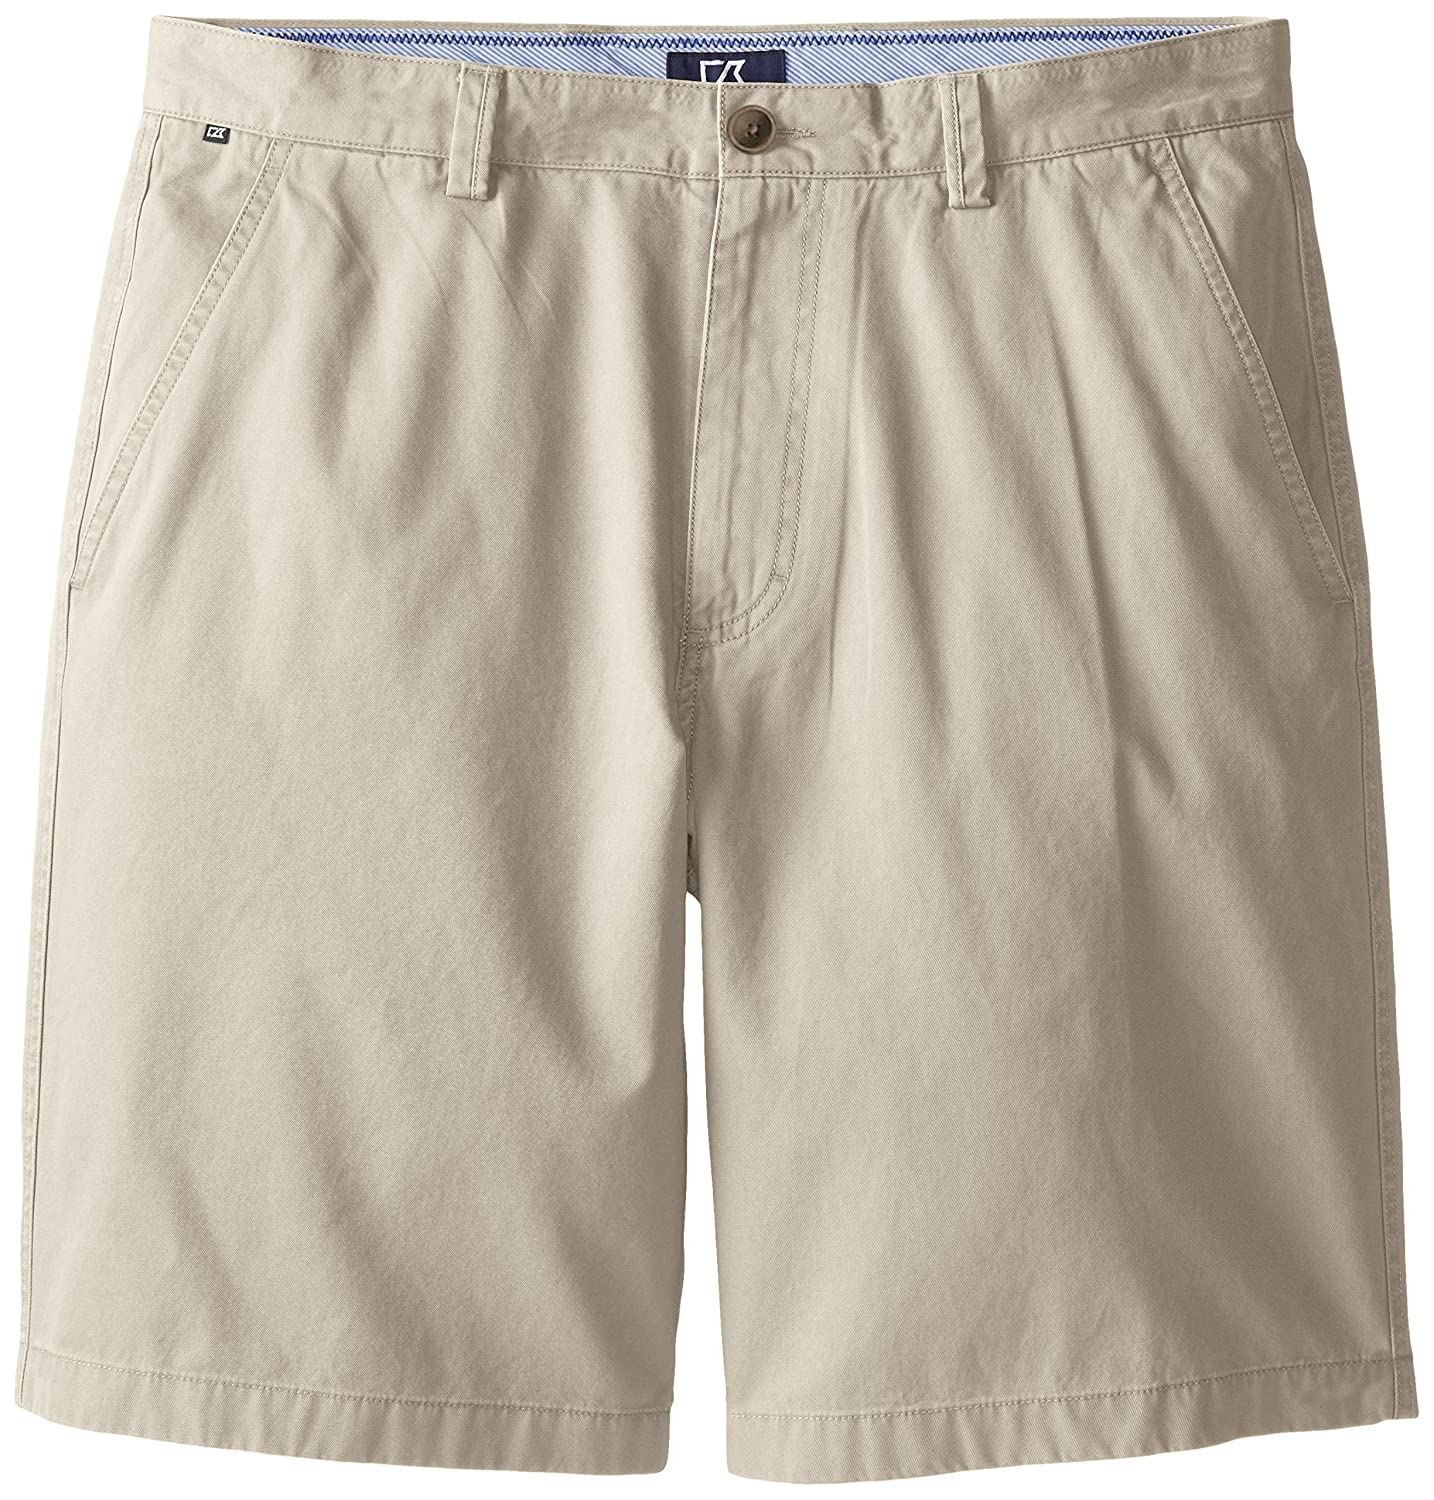 Cutter & Buck Men's Big & Tall Beckett Short BCB00079